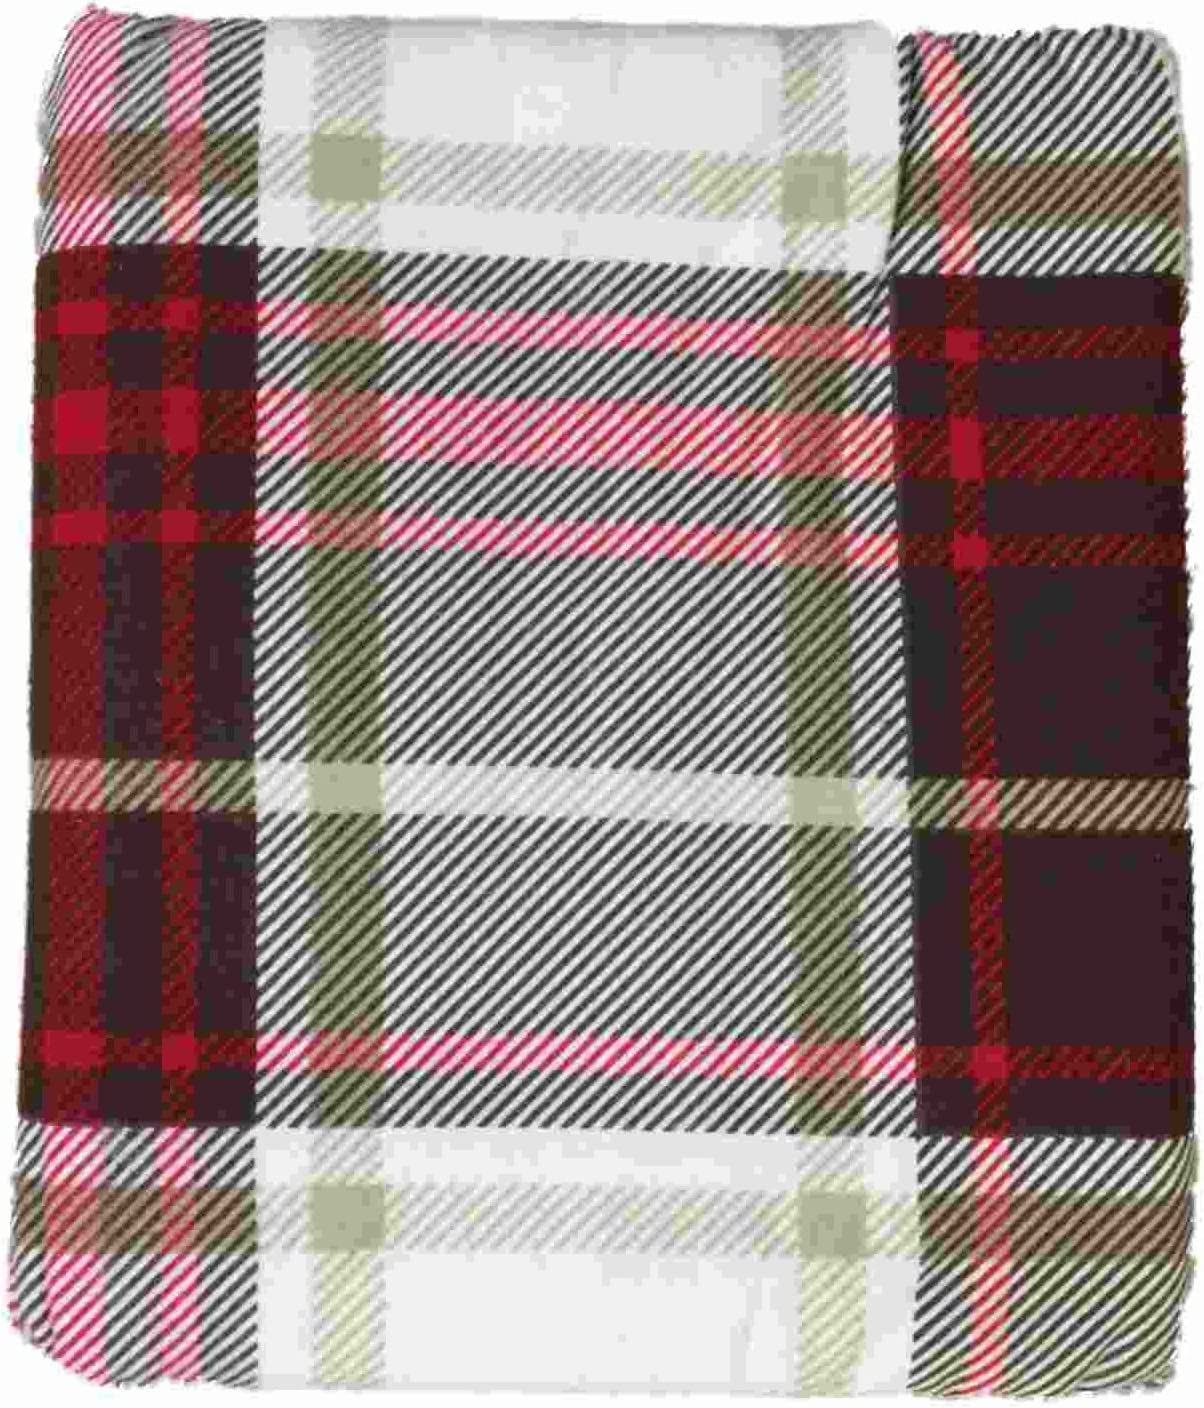 Amazon Com Hd Heavyweight Brown Red Plaid Flannel Sheet Set Queen Bed Sheets Bedding Home Kitchen